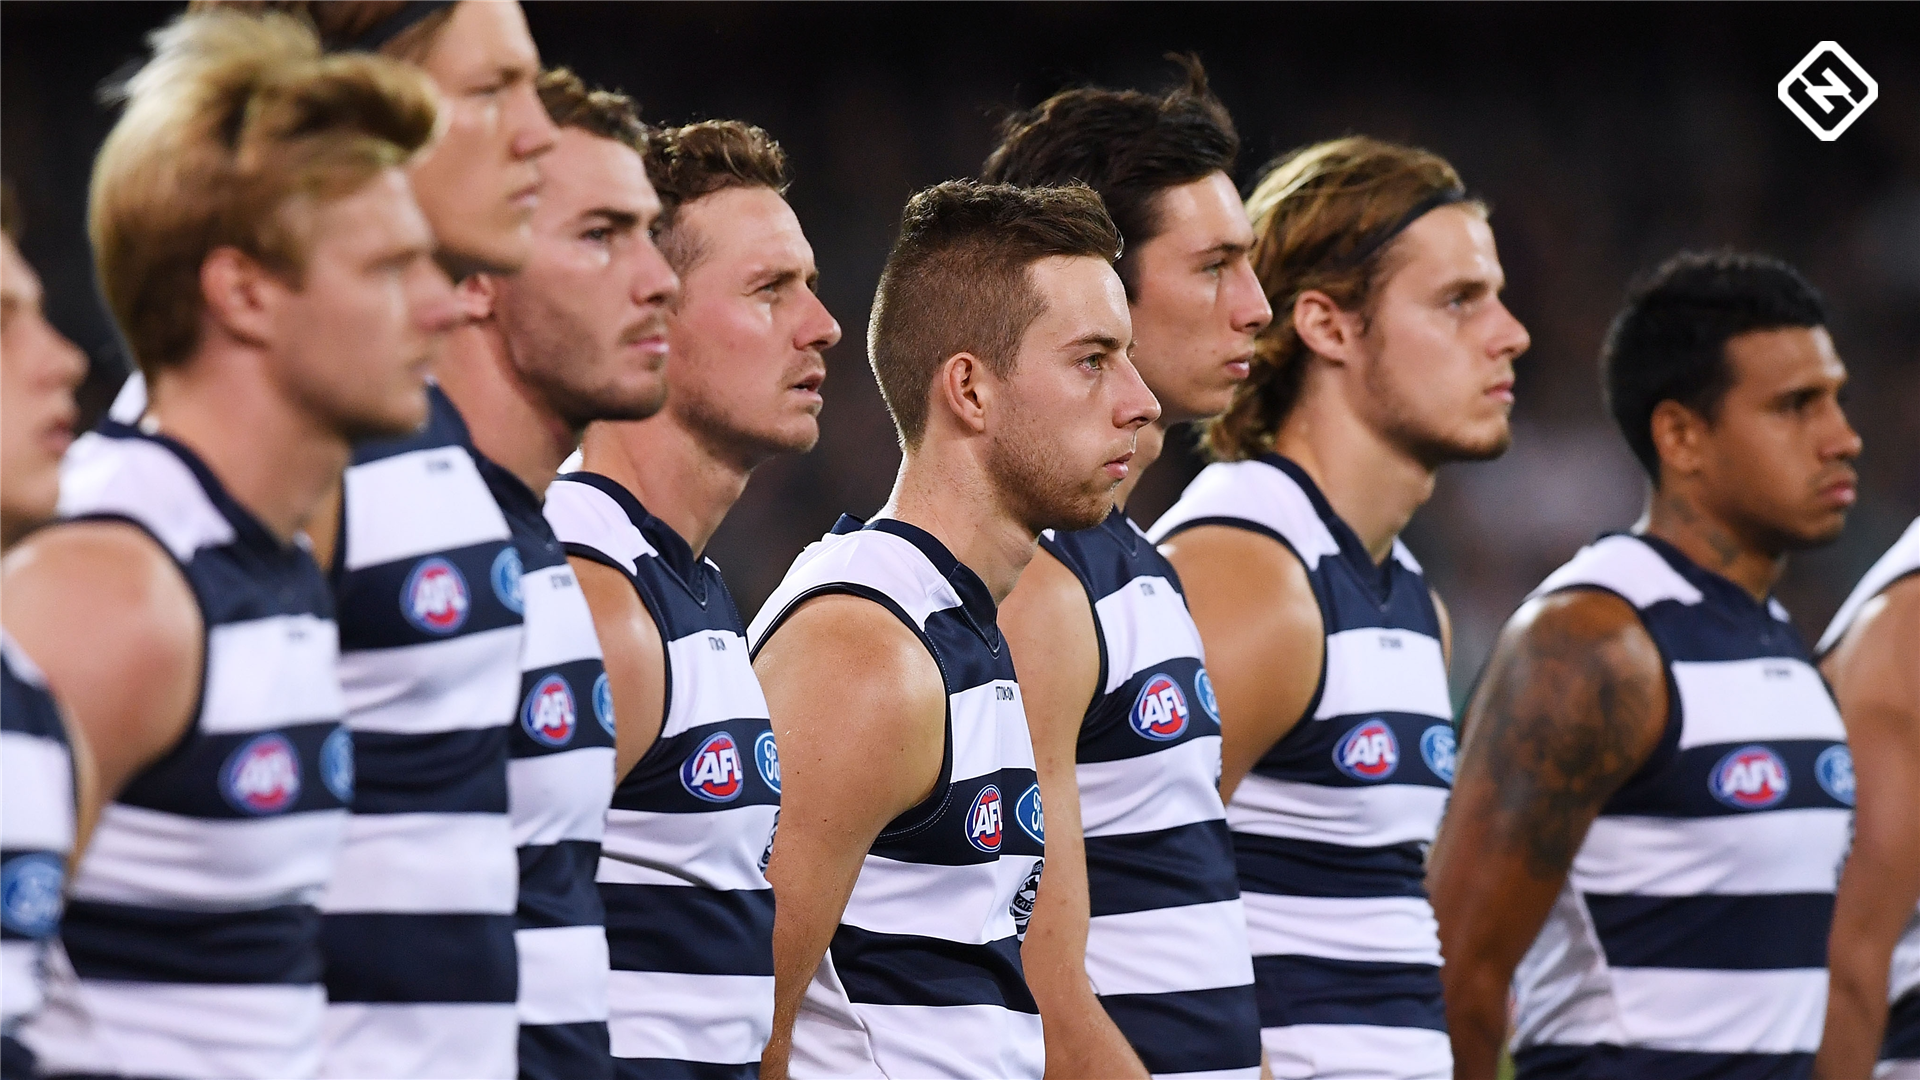 Geelong Cats' list for 2019 after AFL trade and draft periods